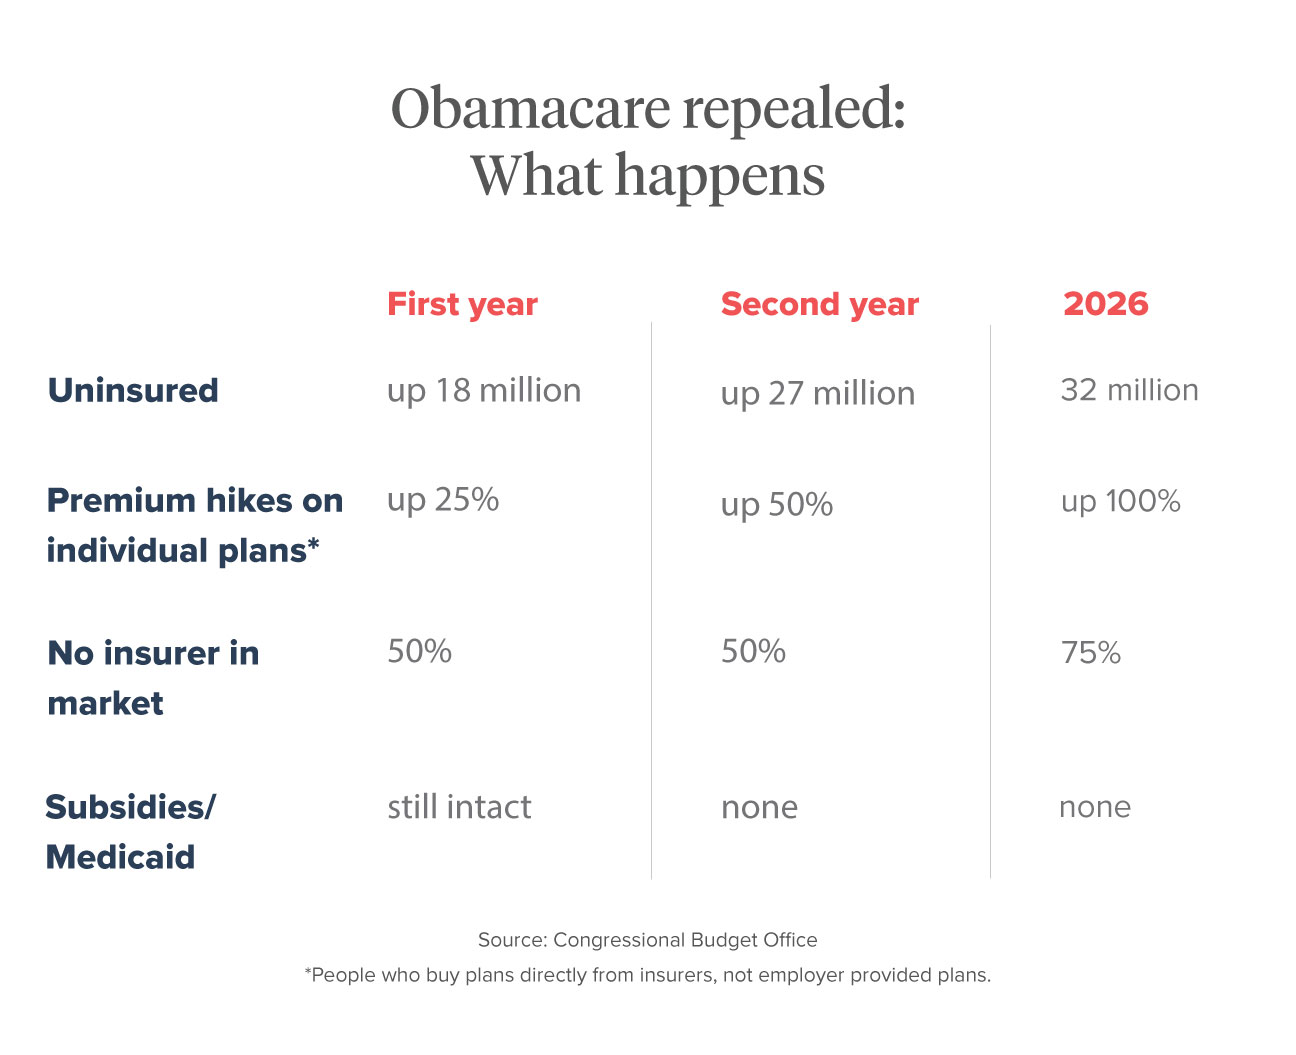 obamacare repealed